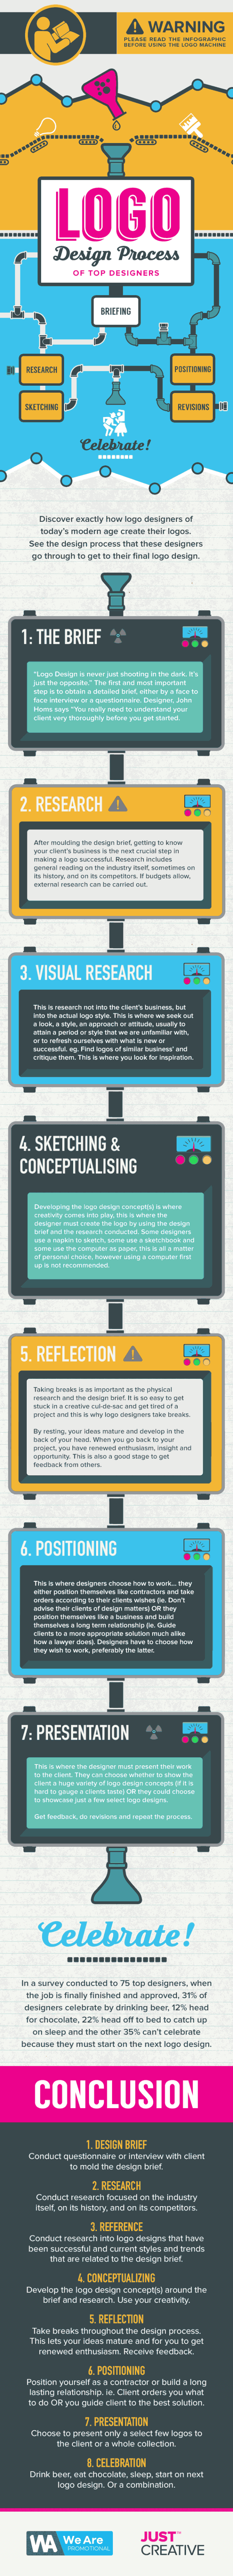 The Logo Design Process of Top Designers [Infographic]